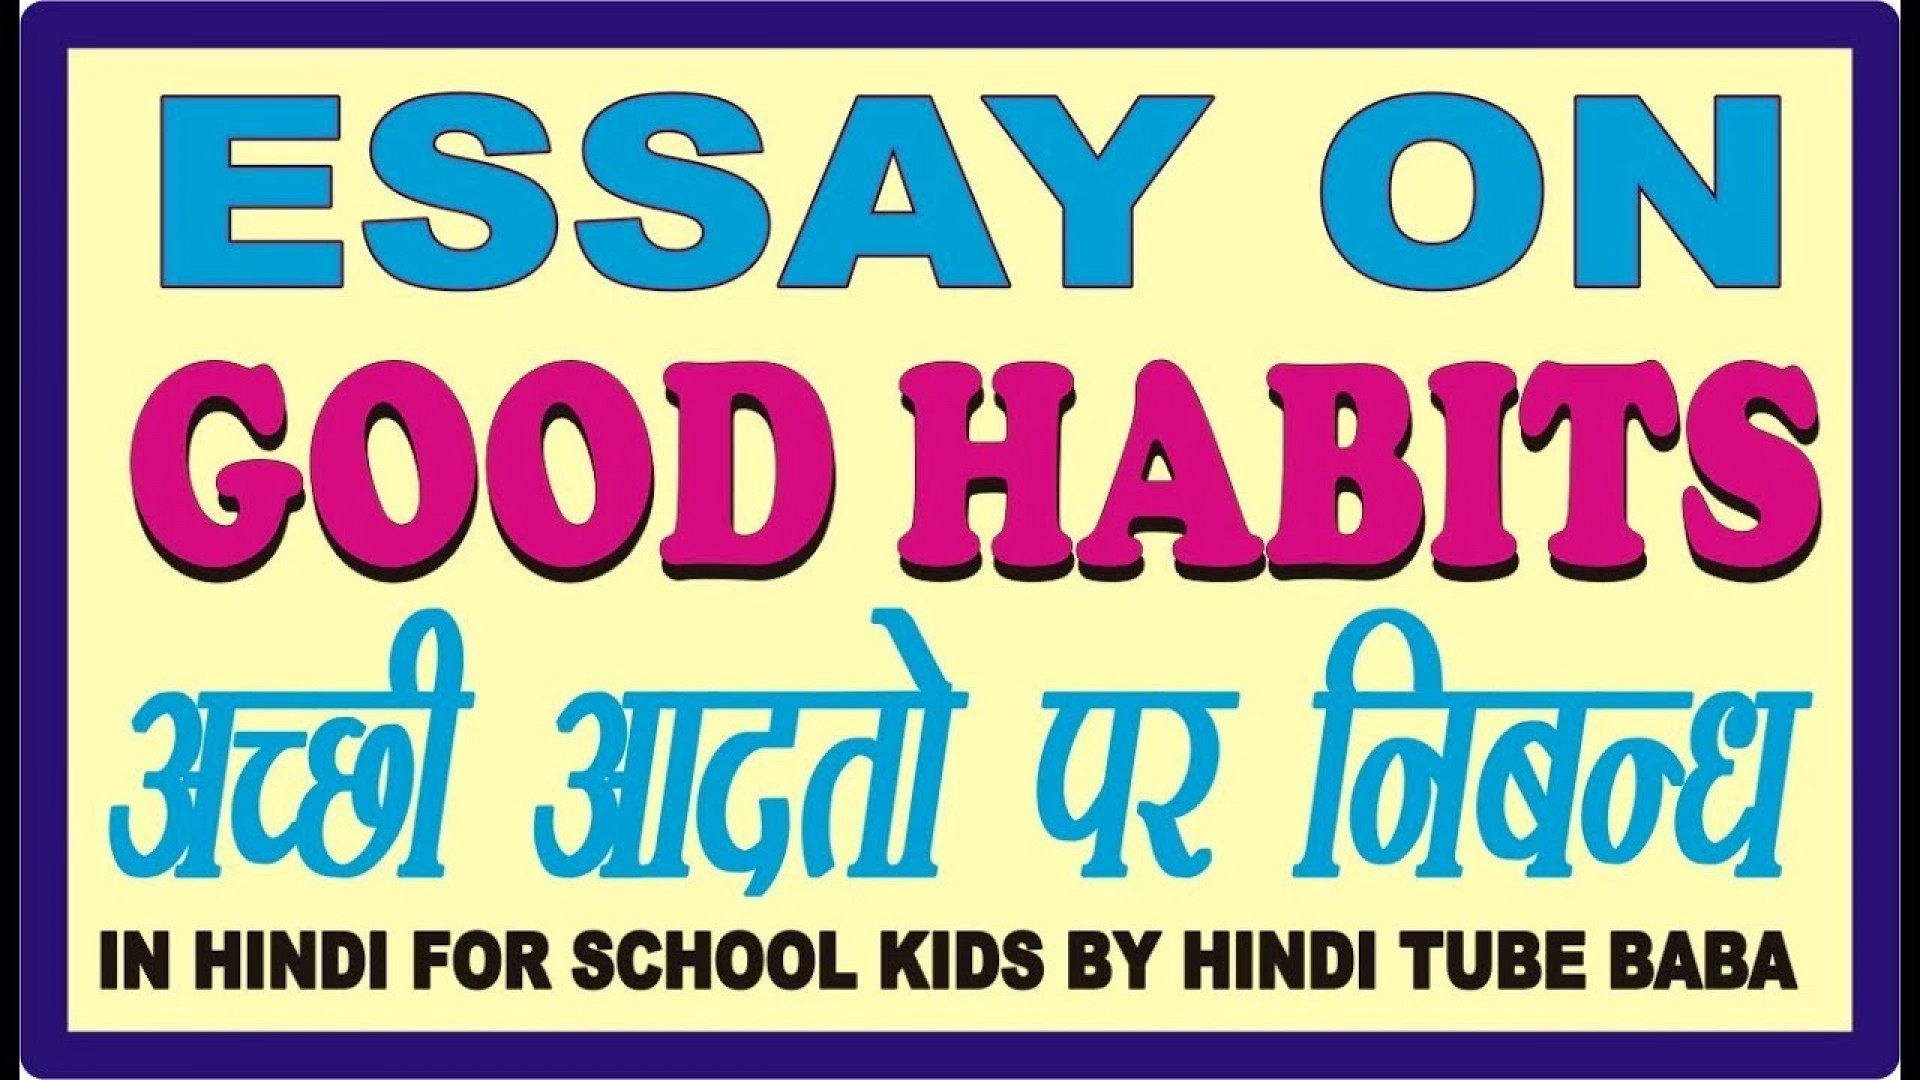 006 Good Habits Essay In Hindi Maxresdefault Exceptional Habit Wikipedia Eating 1920